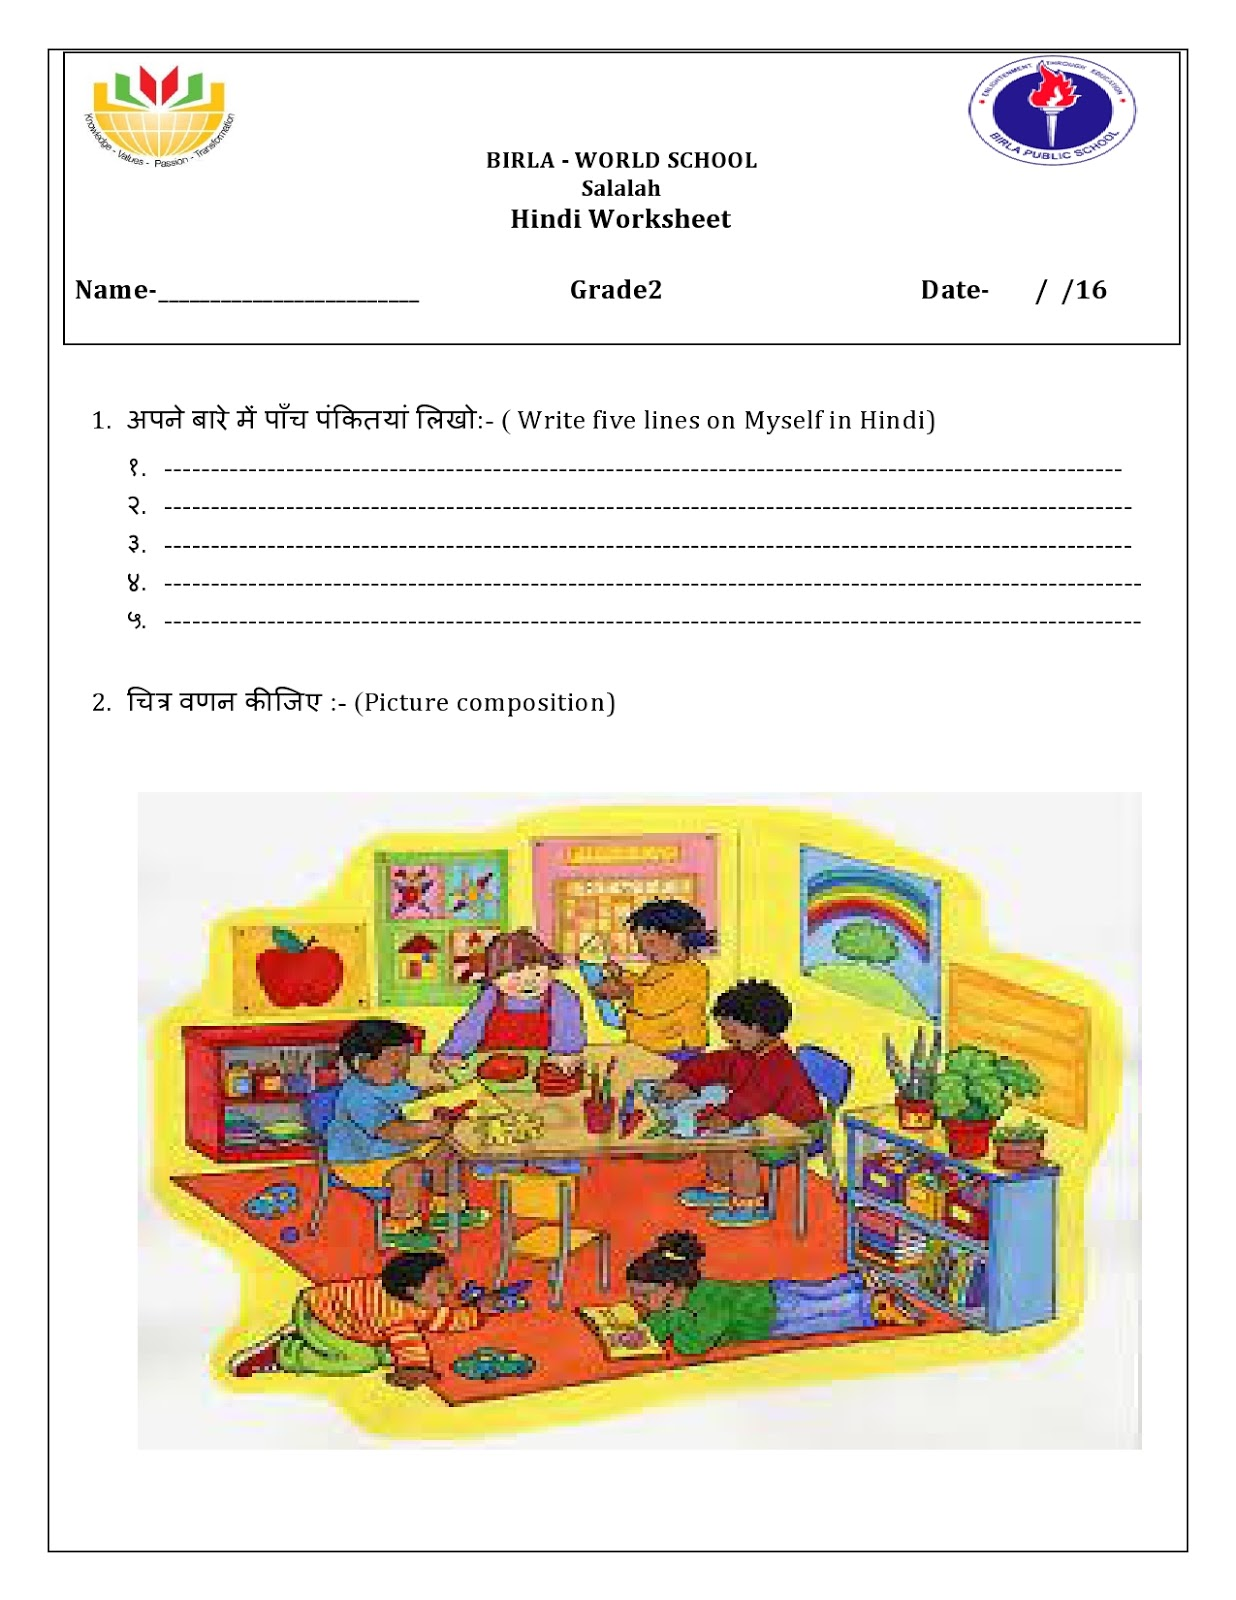 Worksheets Grade 2 Composition birla world school oman january 2016 following are the worksheets to direct students towards self learning please note that these for additional practice and optional